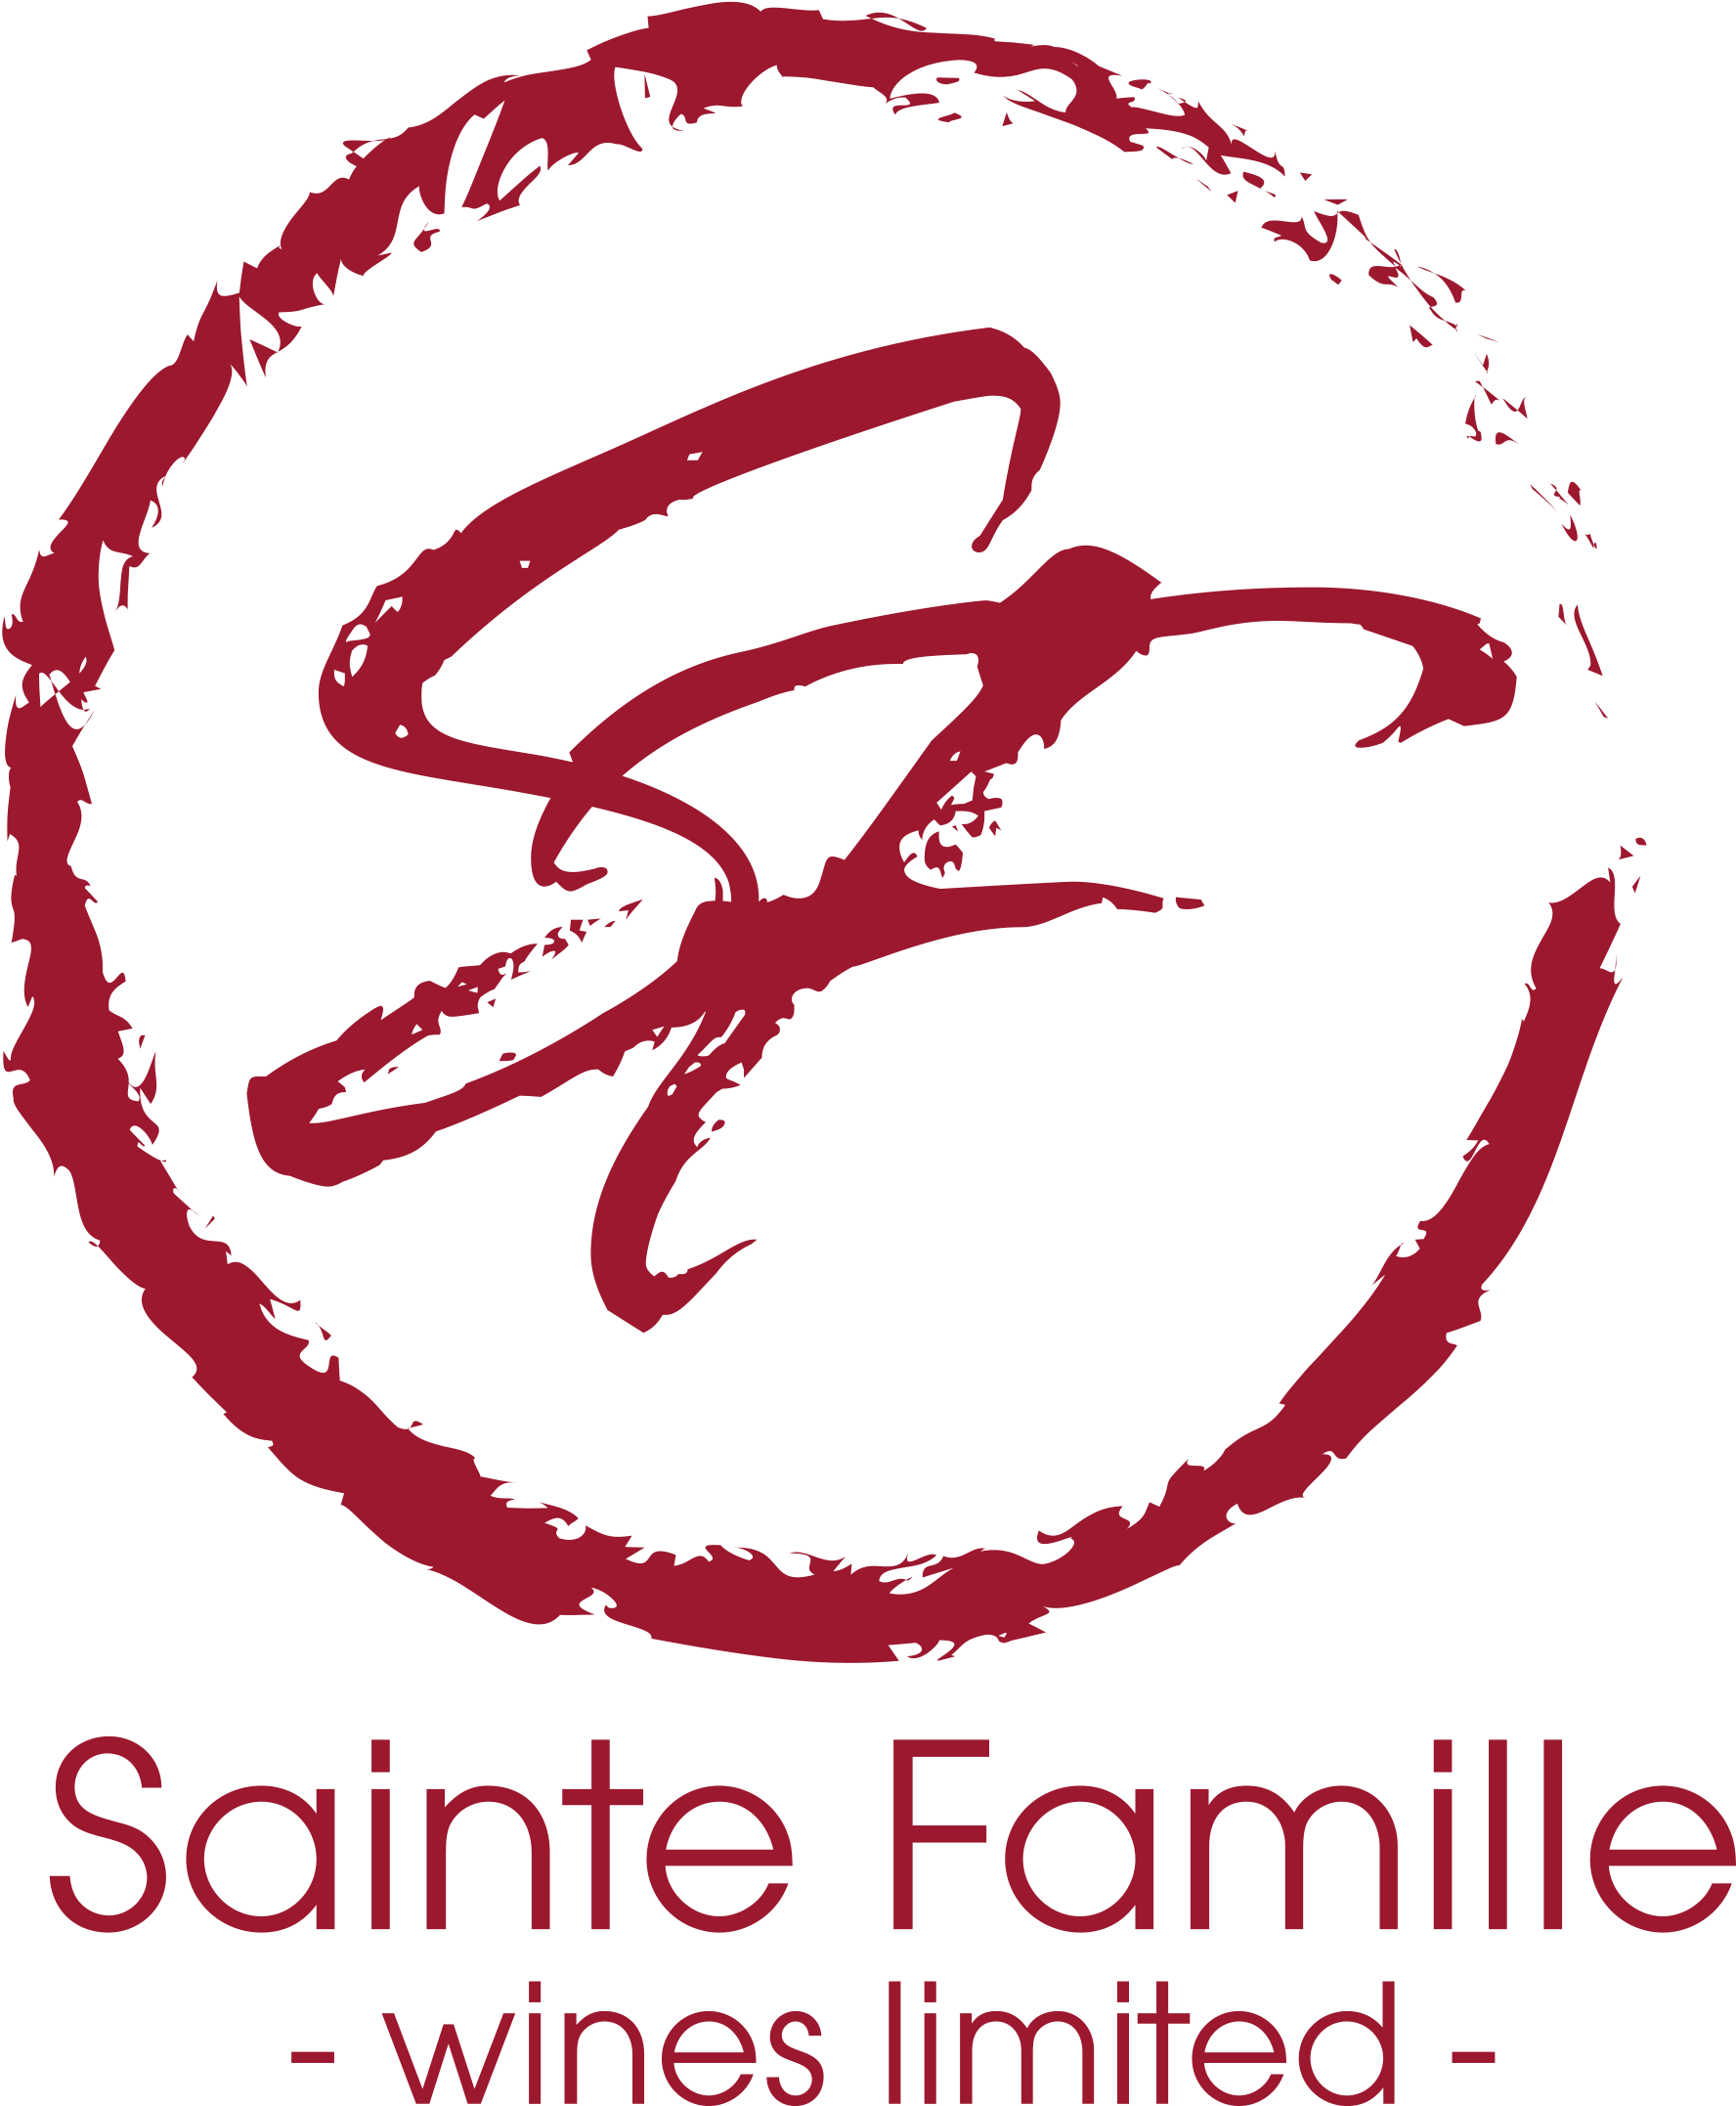 Sainte Famille Wines Limited